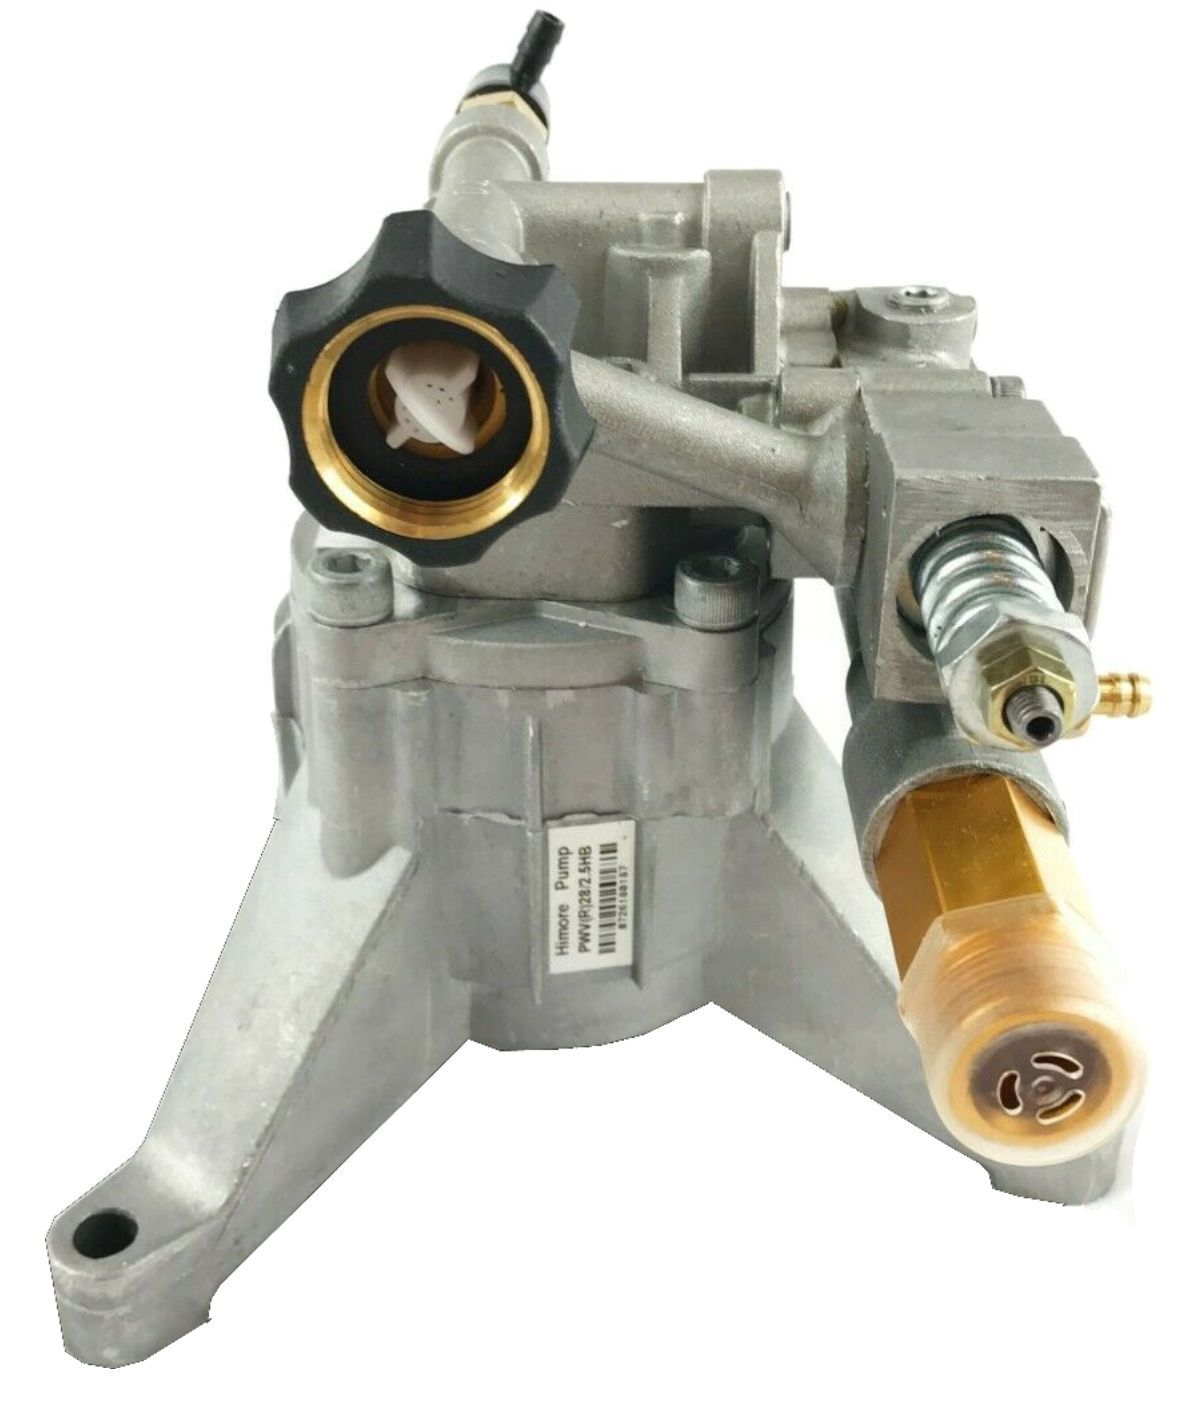 2700 PSI PRESSURE WASHER WATER PUMP fits Troy-Bilt 020422-0 020422-1 - AE-Power